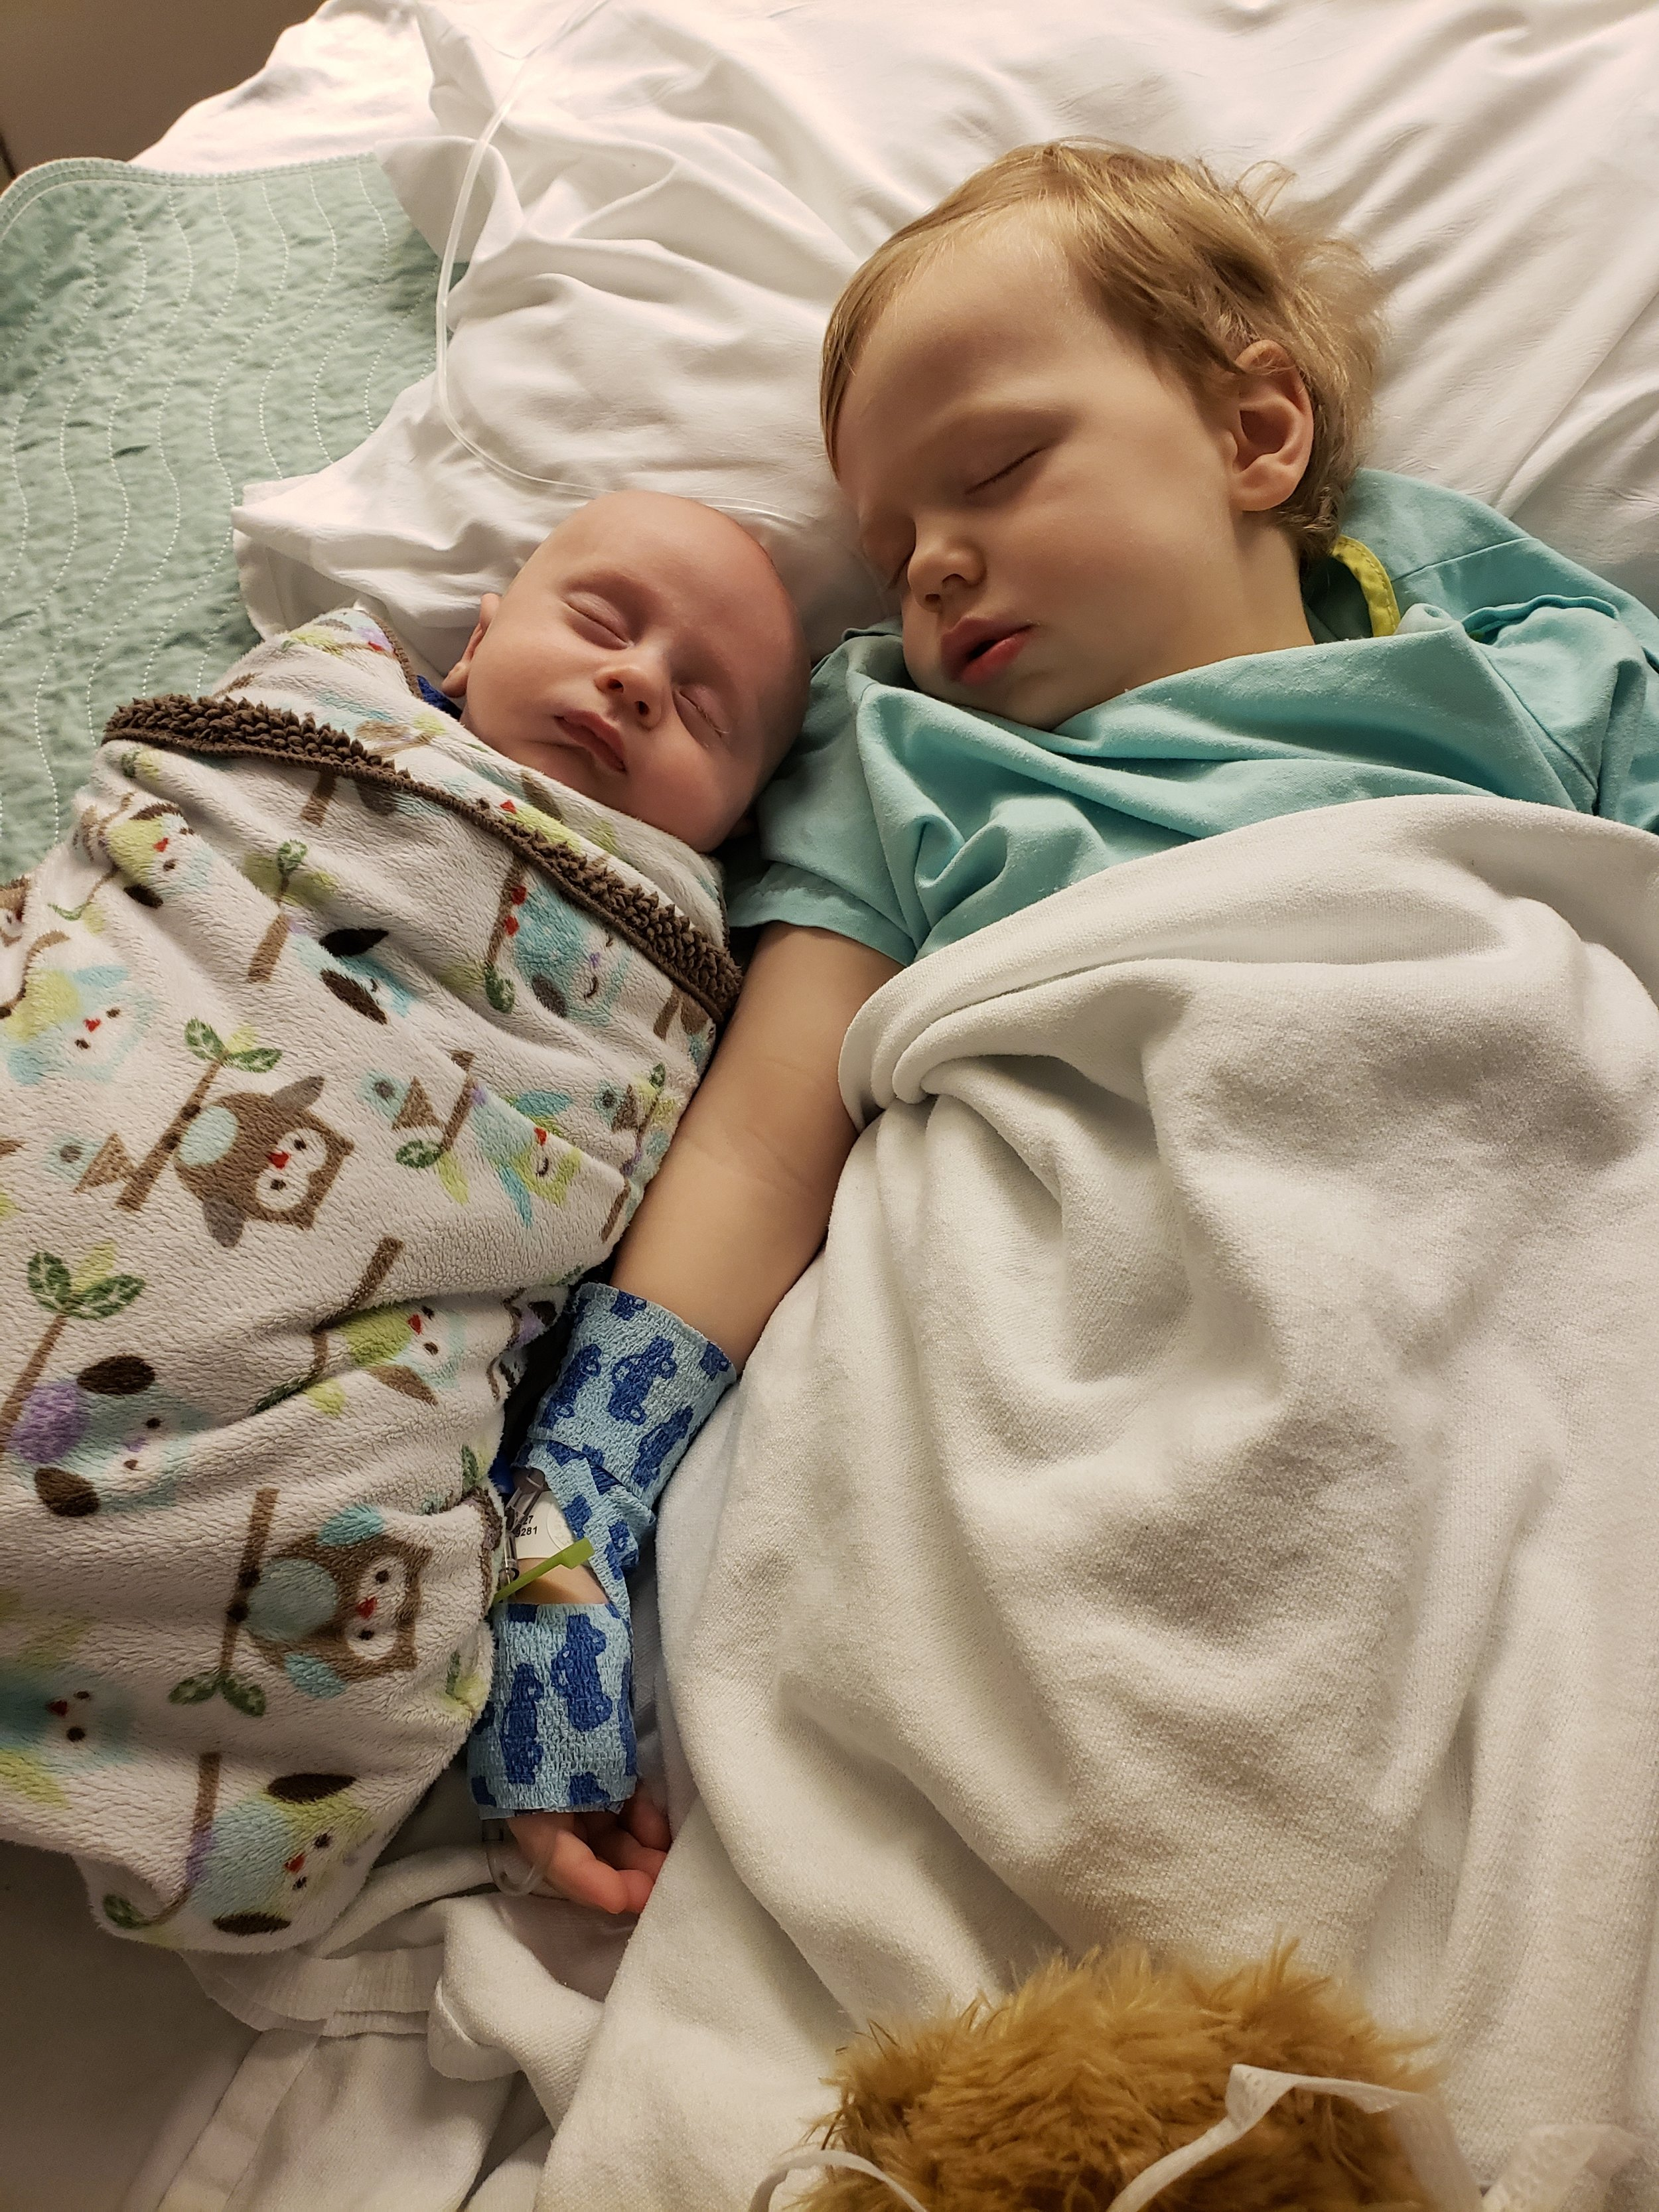 Cameron and Braden share a nap after Cameron's hernia surgery.